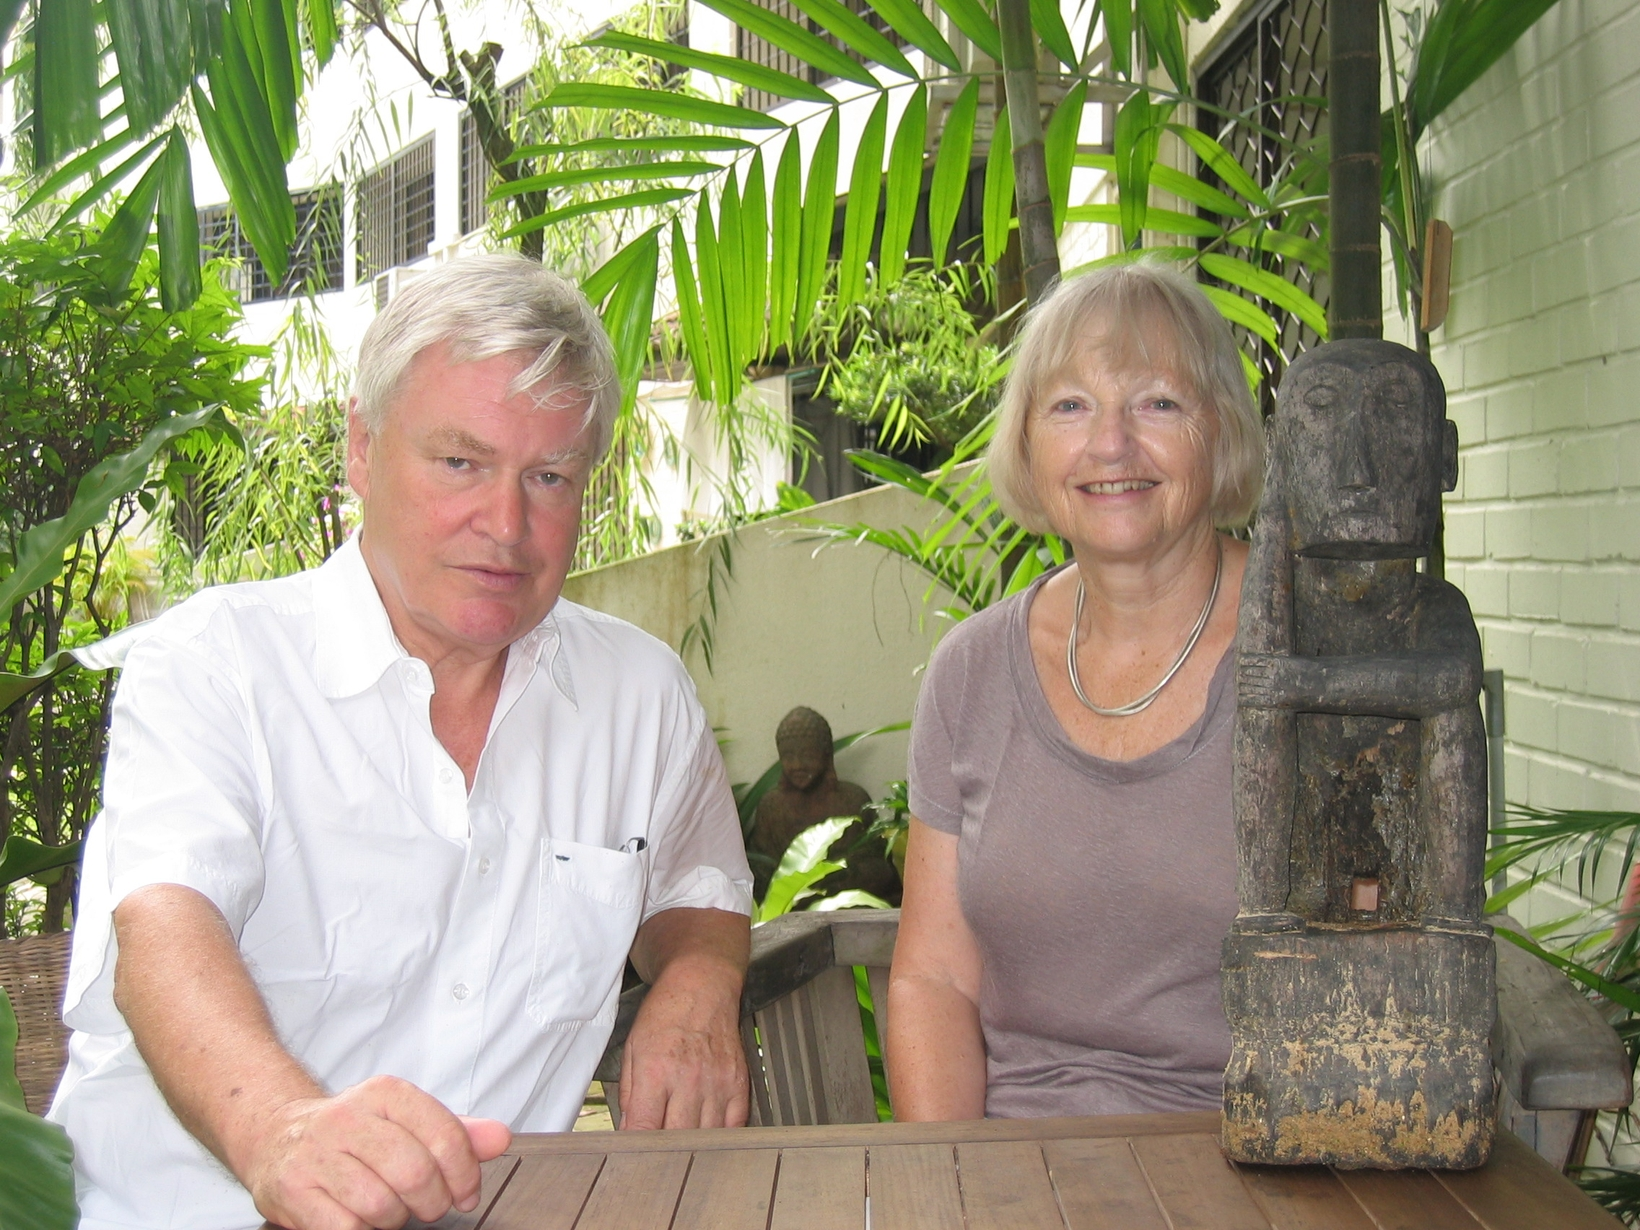 Hugh & Clare from Castanet, France